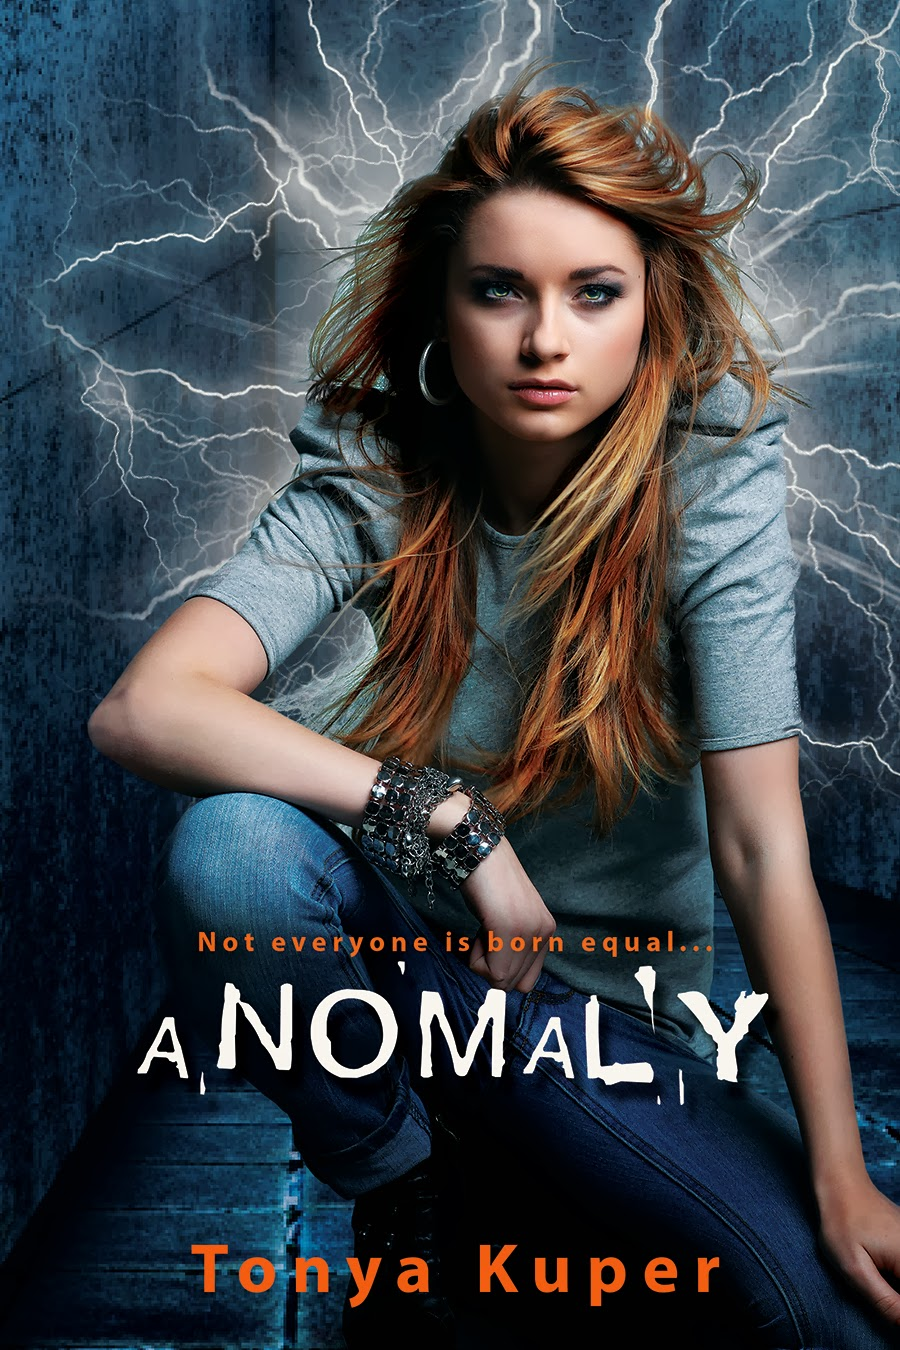 http://bookladysreviews.blogspot.com/2014/02/cover-reveal-anomaly-by-tonya-kuper.html